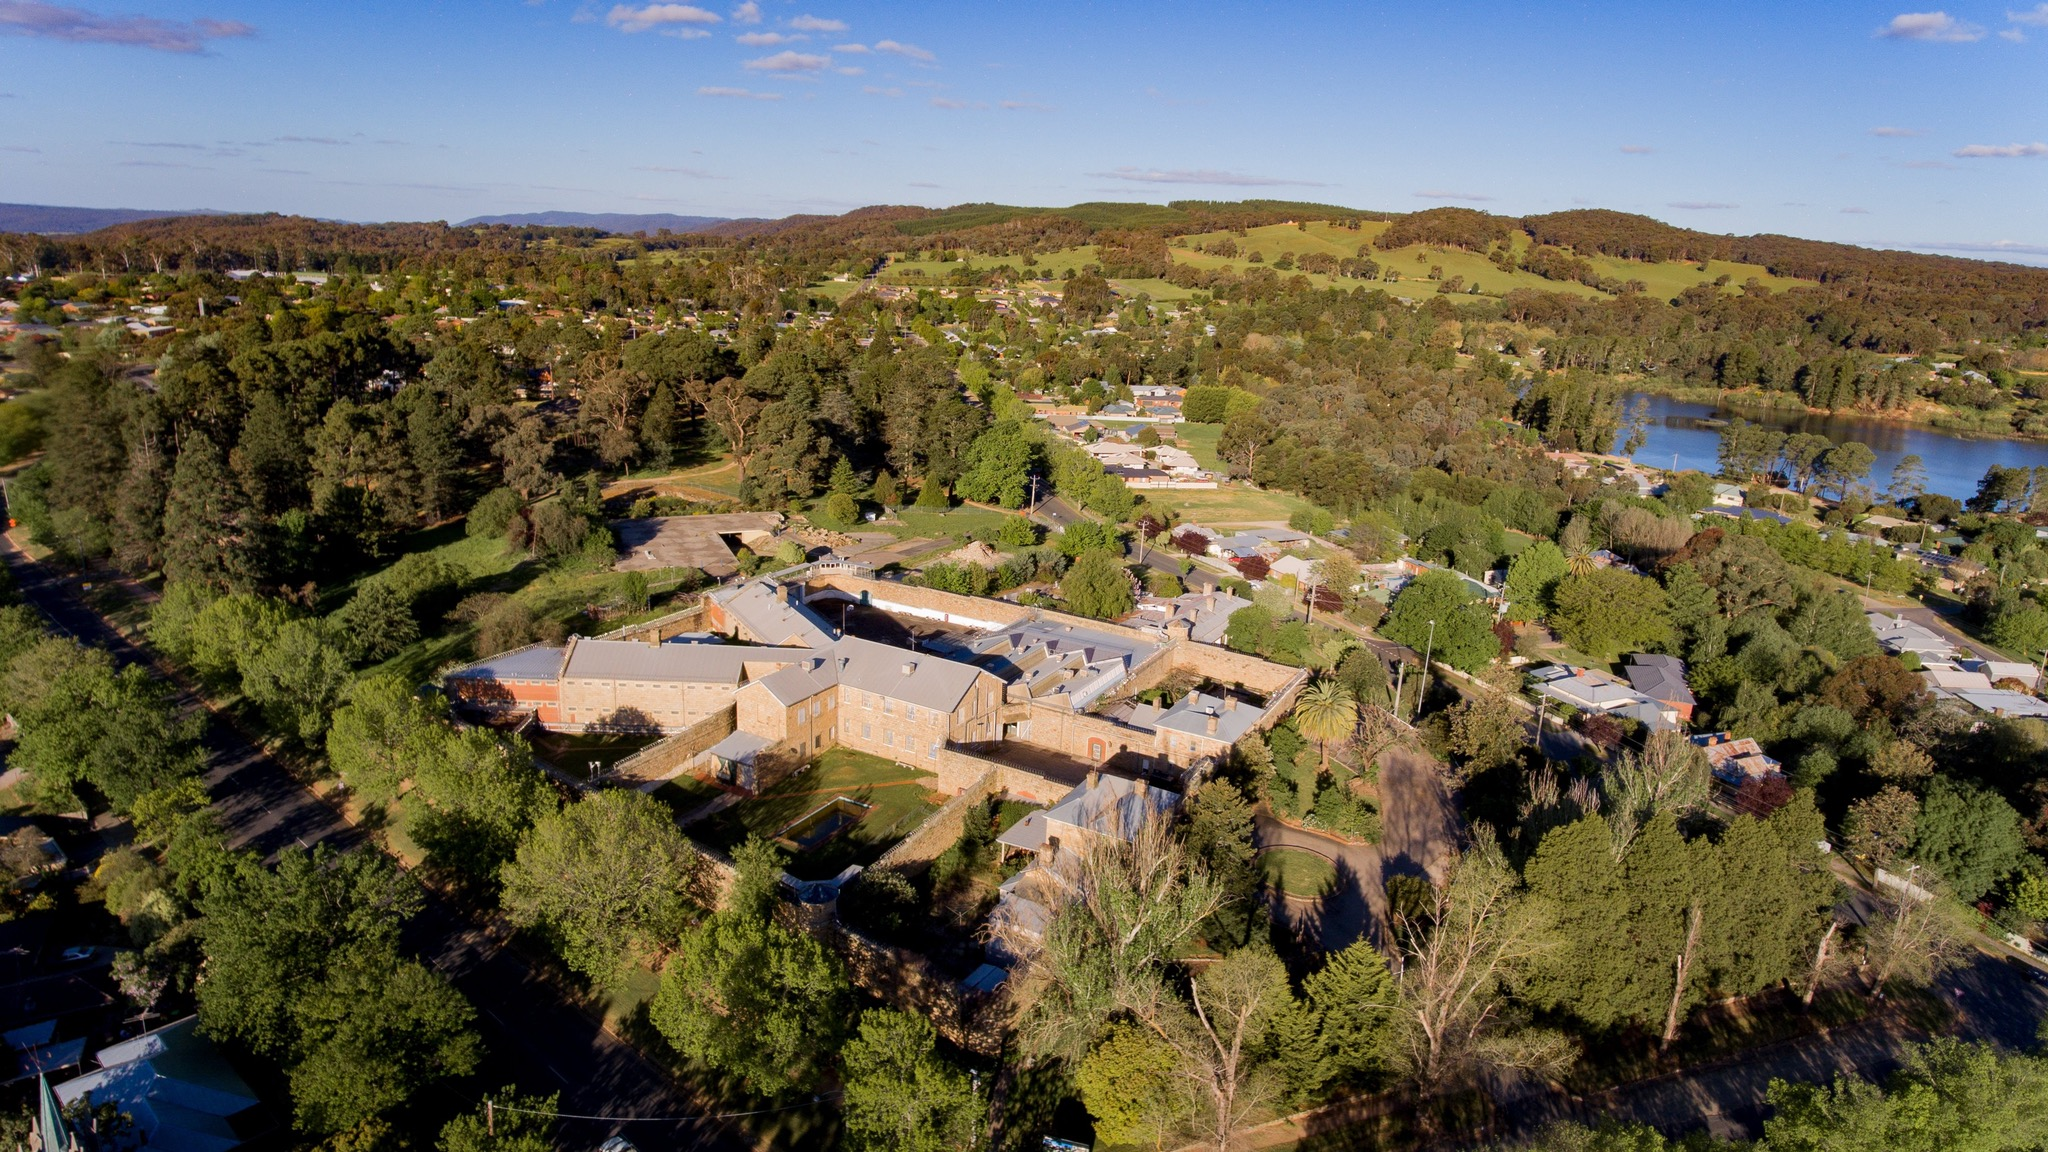 Aerial photograph of the Old Beechworth Gaol